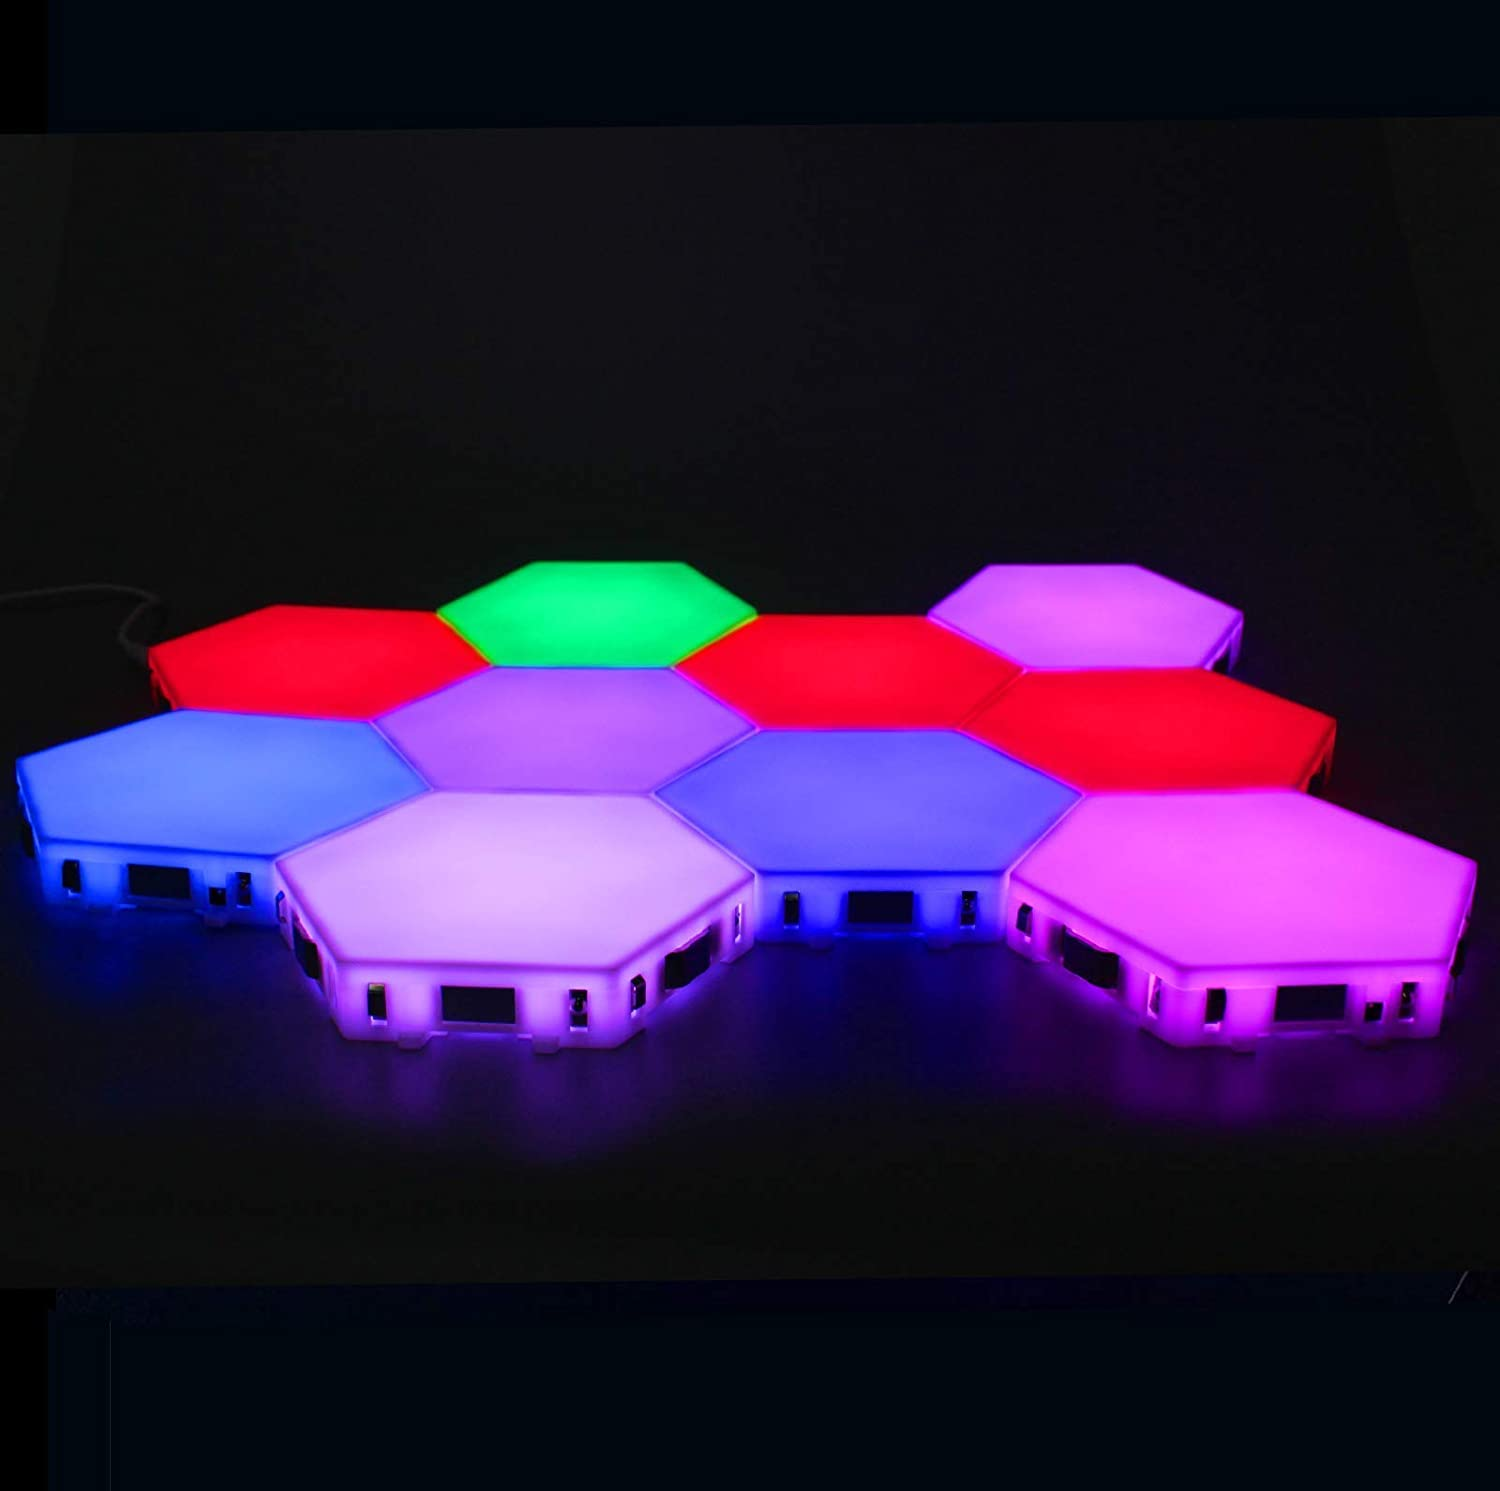 Hexagon Lights RGB 5 Inch Large Size DIY Bedside Lamp Modular Touch Lamp Quantum Night Light for Home Office Hotel Bar Festive Gift(3 pcs)